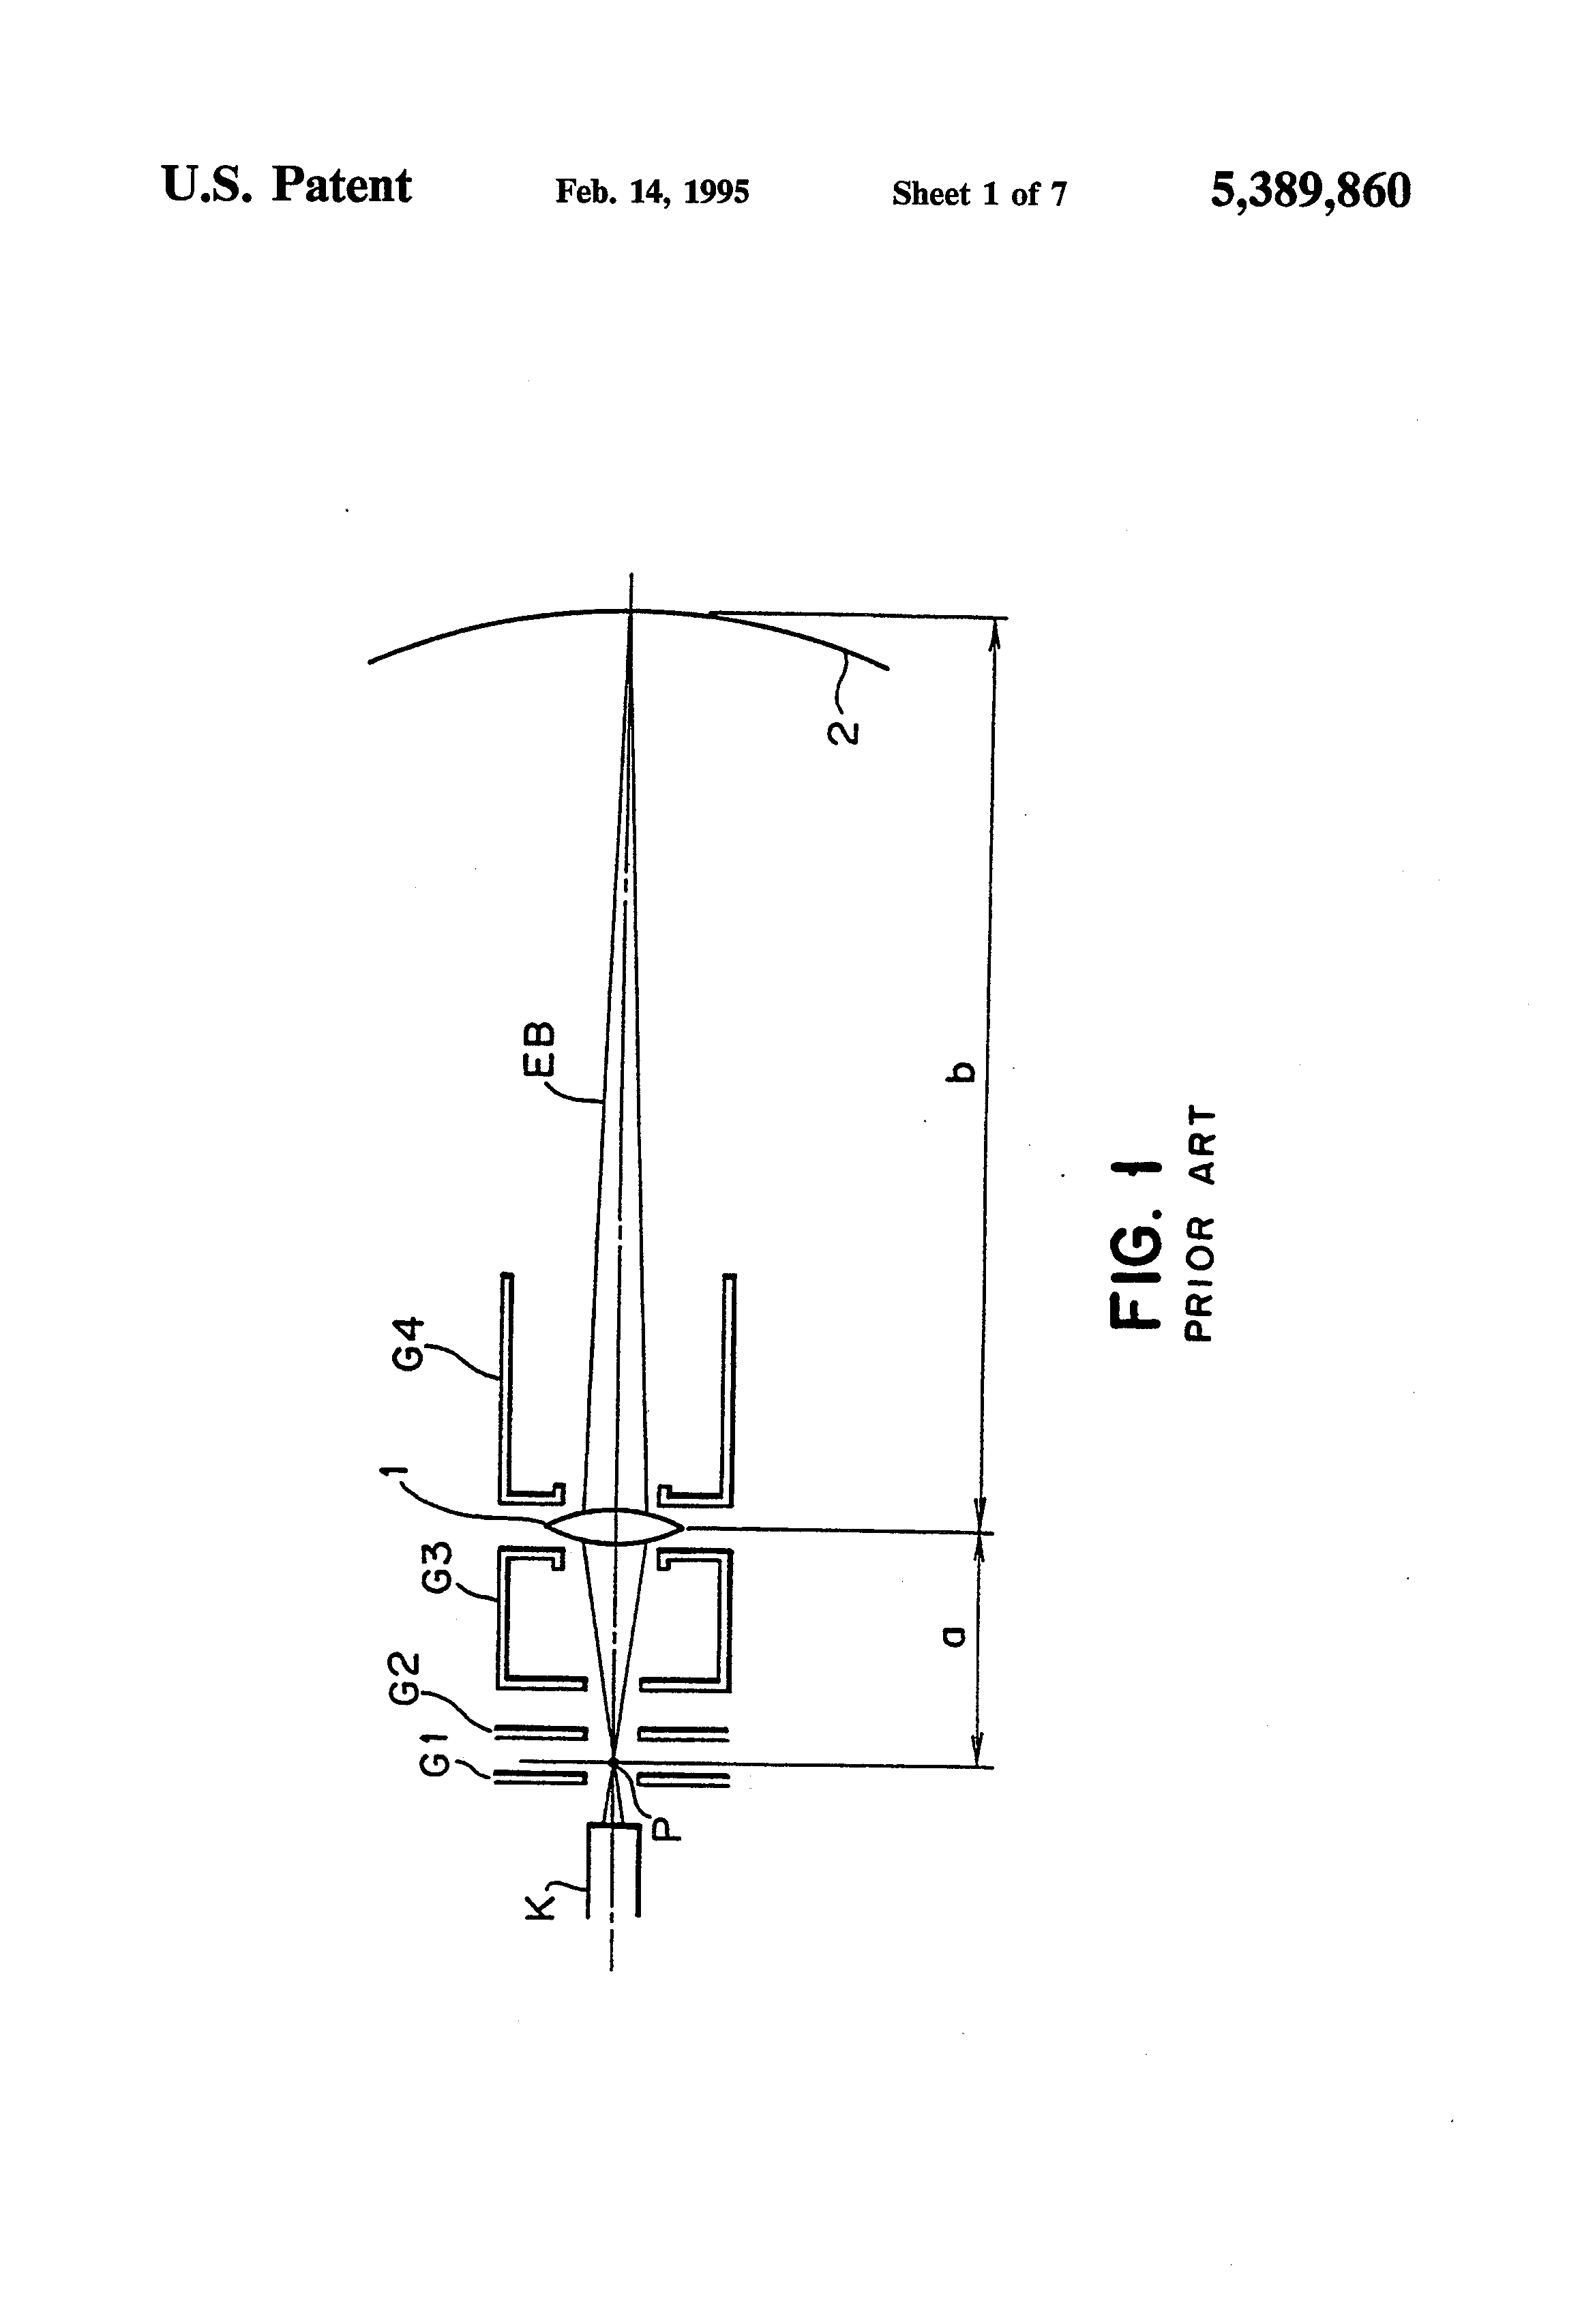 Patent Us5389860 Focus Control Circuit For Crt Google Patents Monitor Schematic Diagram Drawing